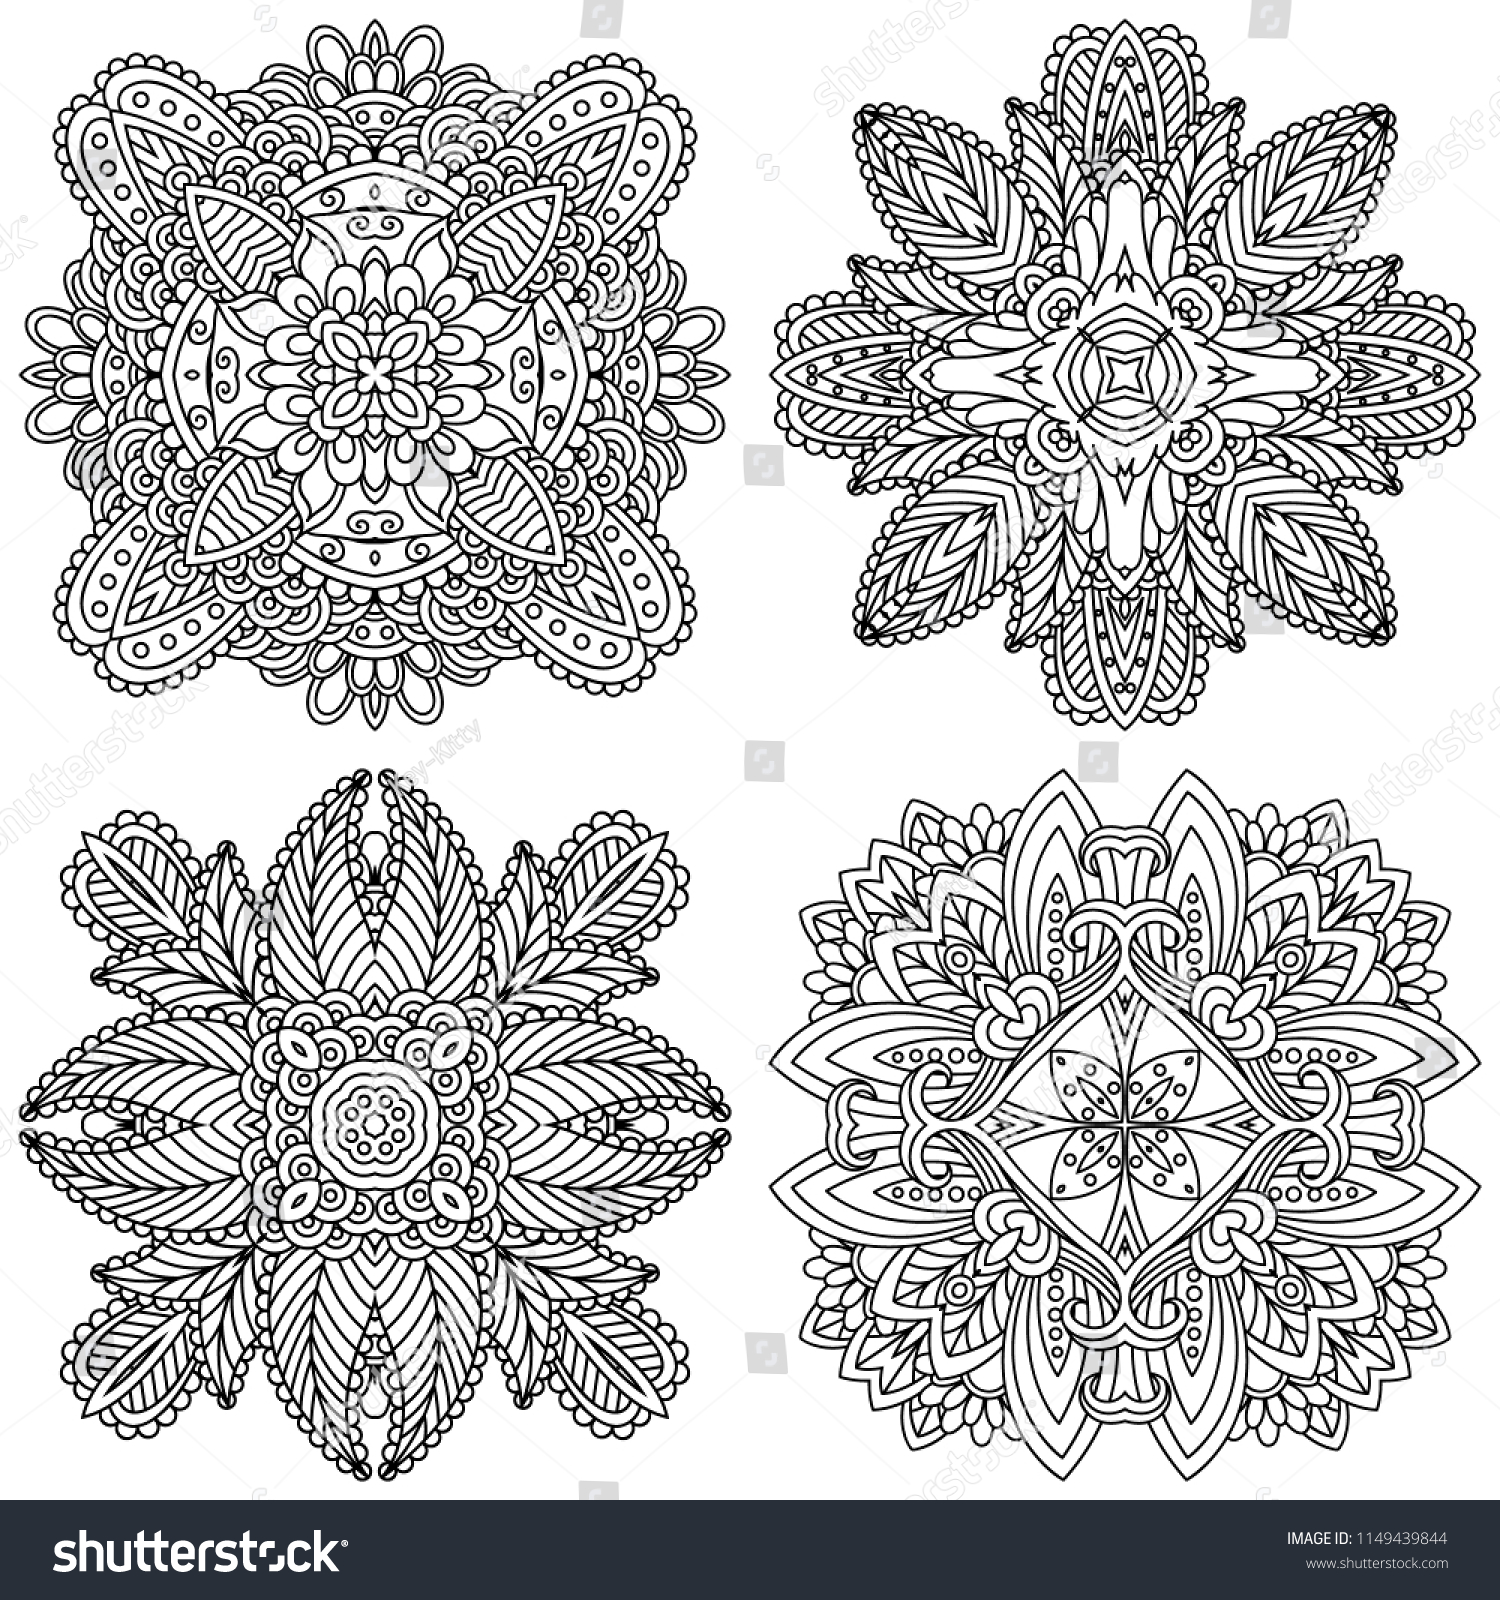 Set Of Black And White Zentangle Mandalas On A Background Vector Template Mandala For